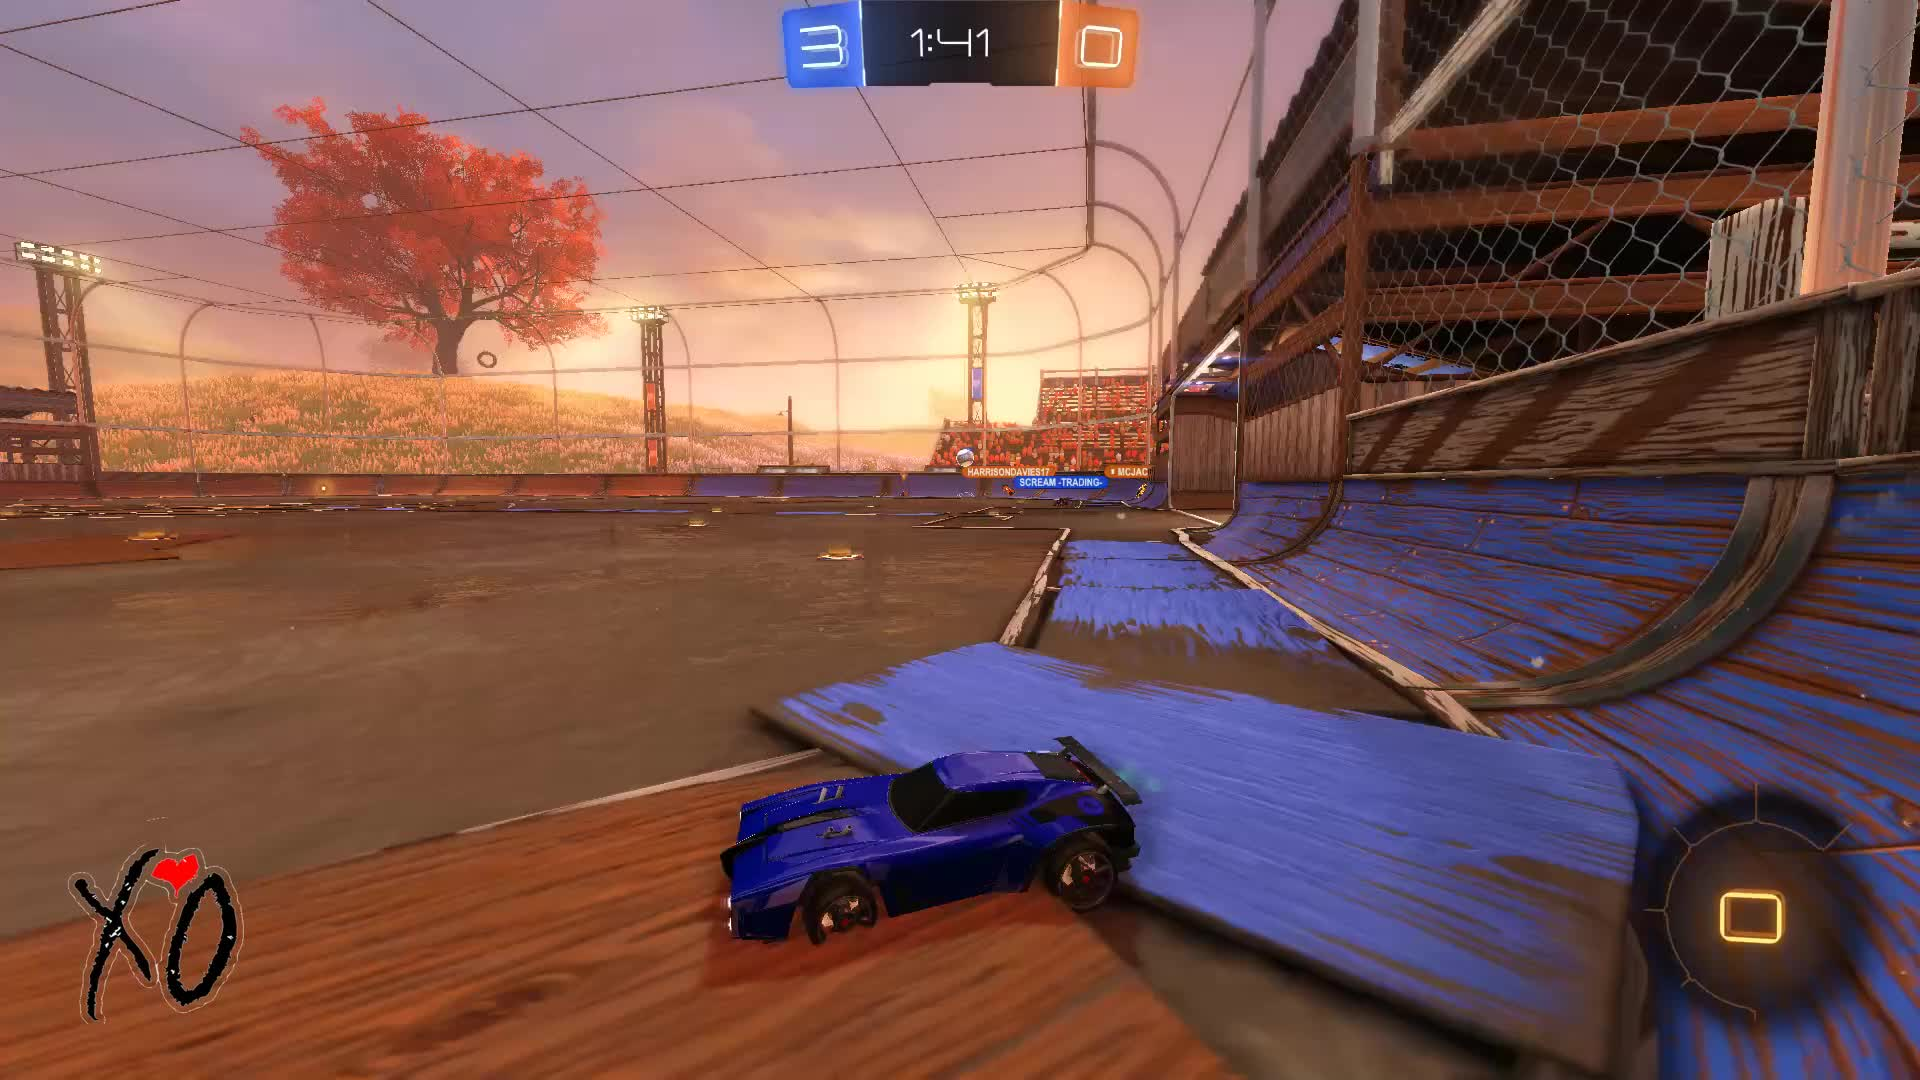 Gif Your Game, GifYourGame, Goal, Rocket League, RocketLeague, Xo, Goal 4: Xo GIFs